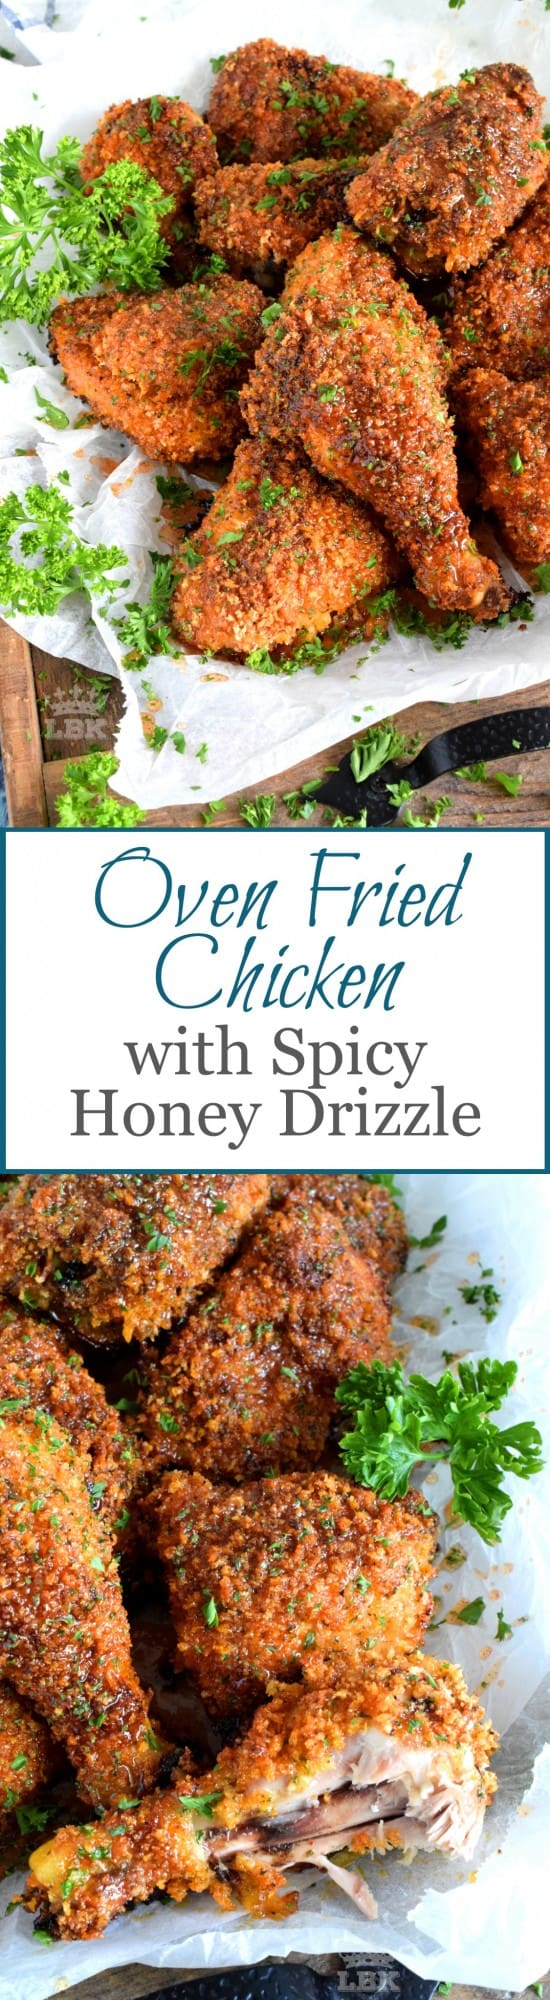 Oven Fried Chicken with Spicy Honey Drizzle